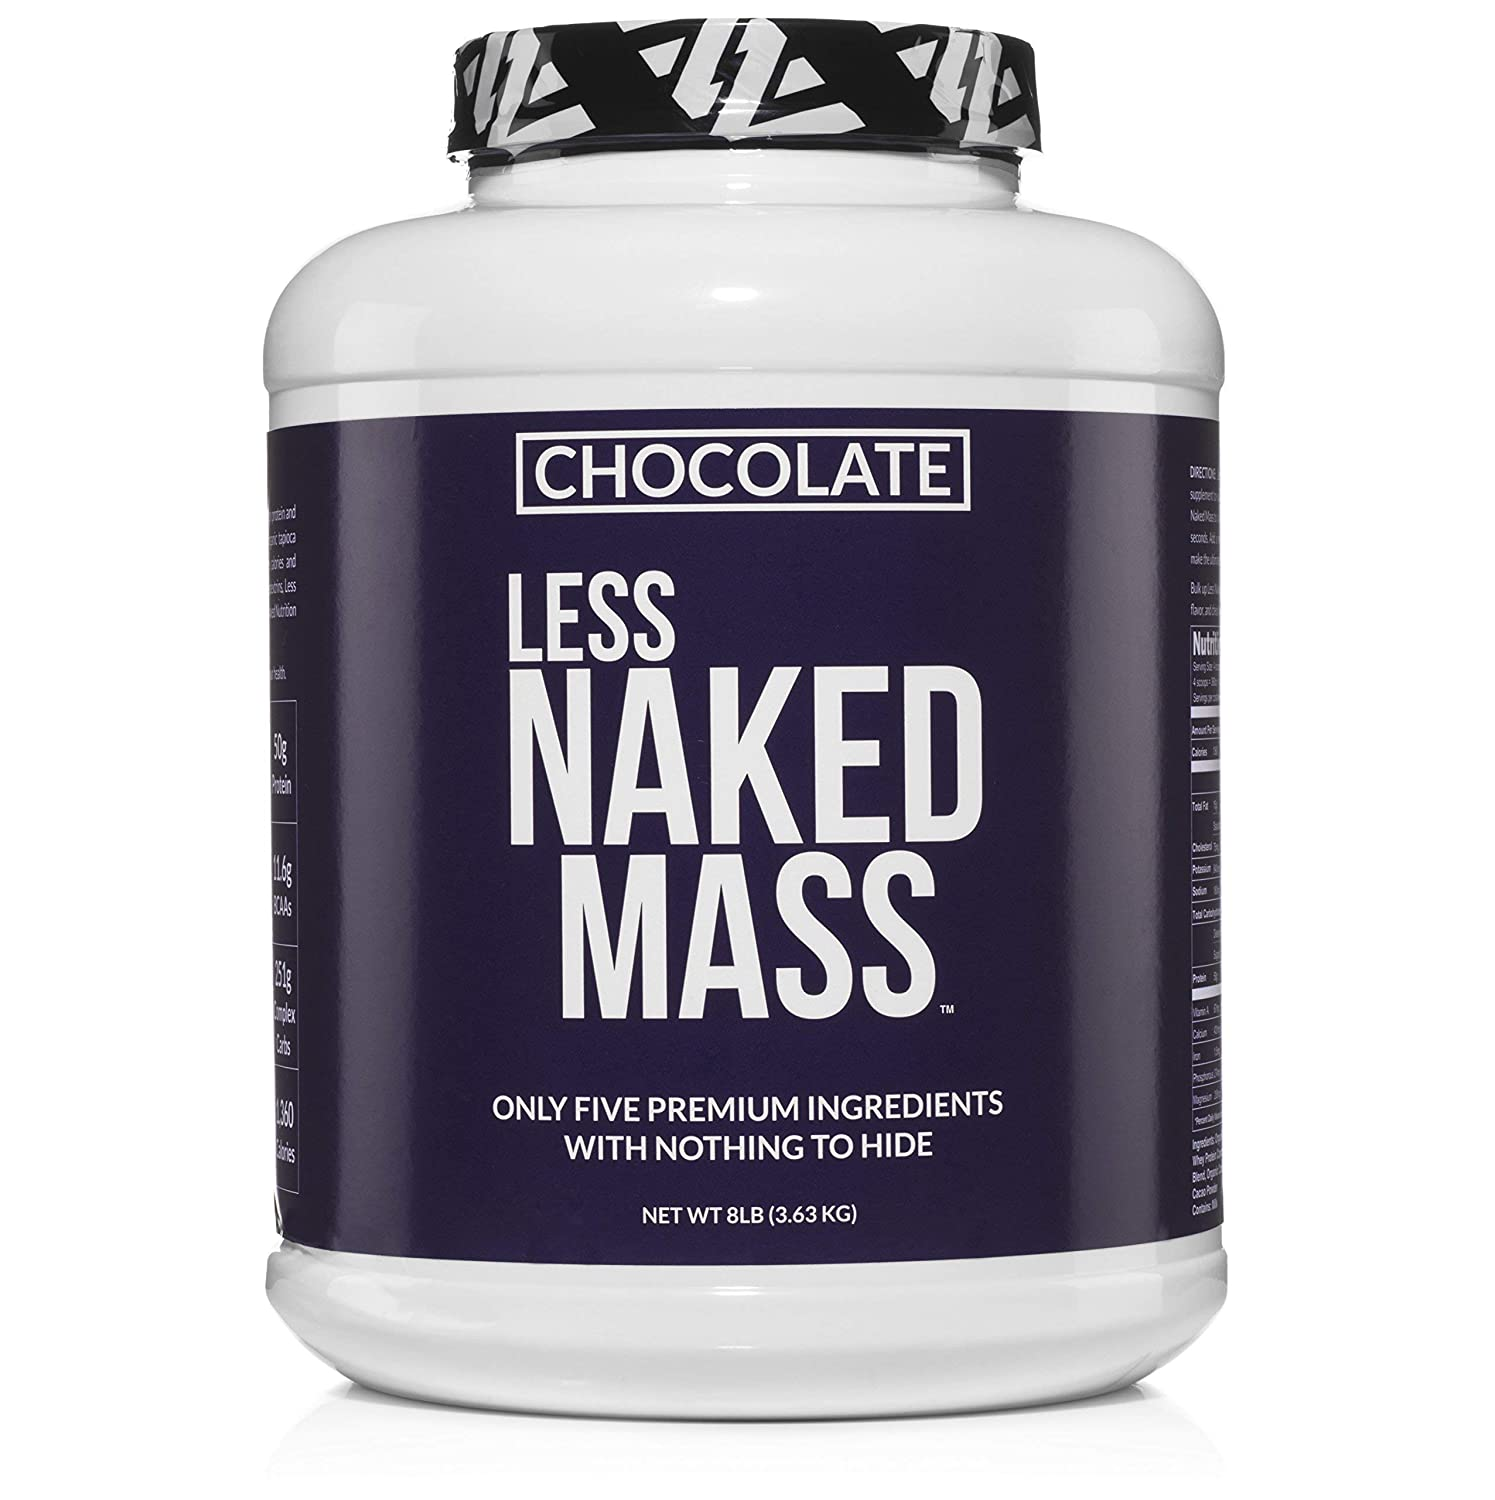 Less Naked Mass